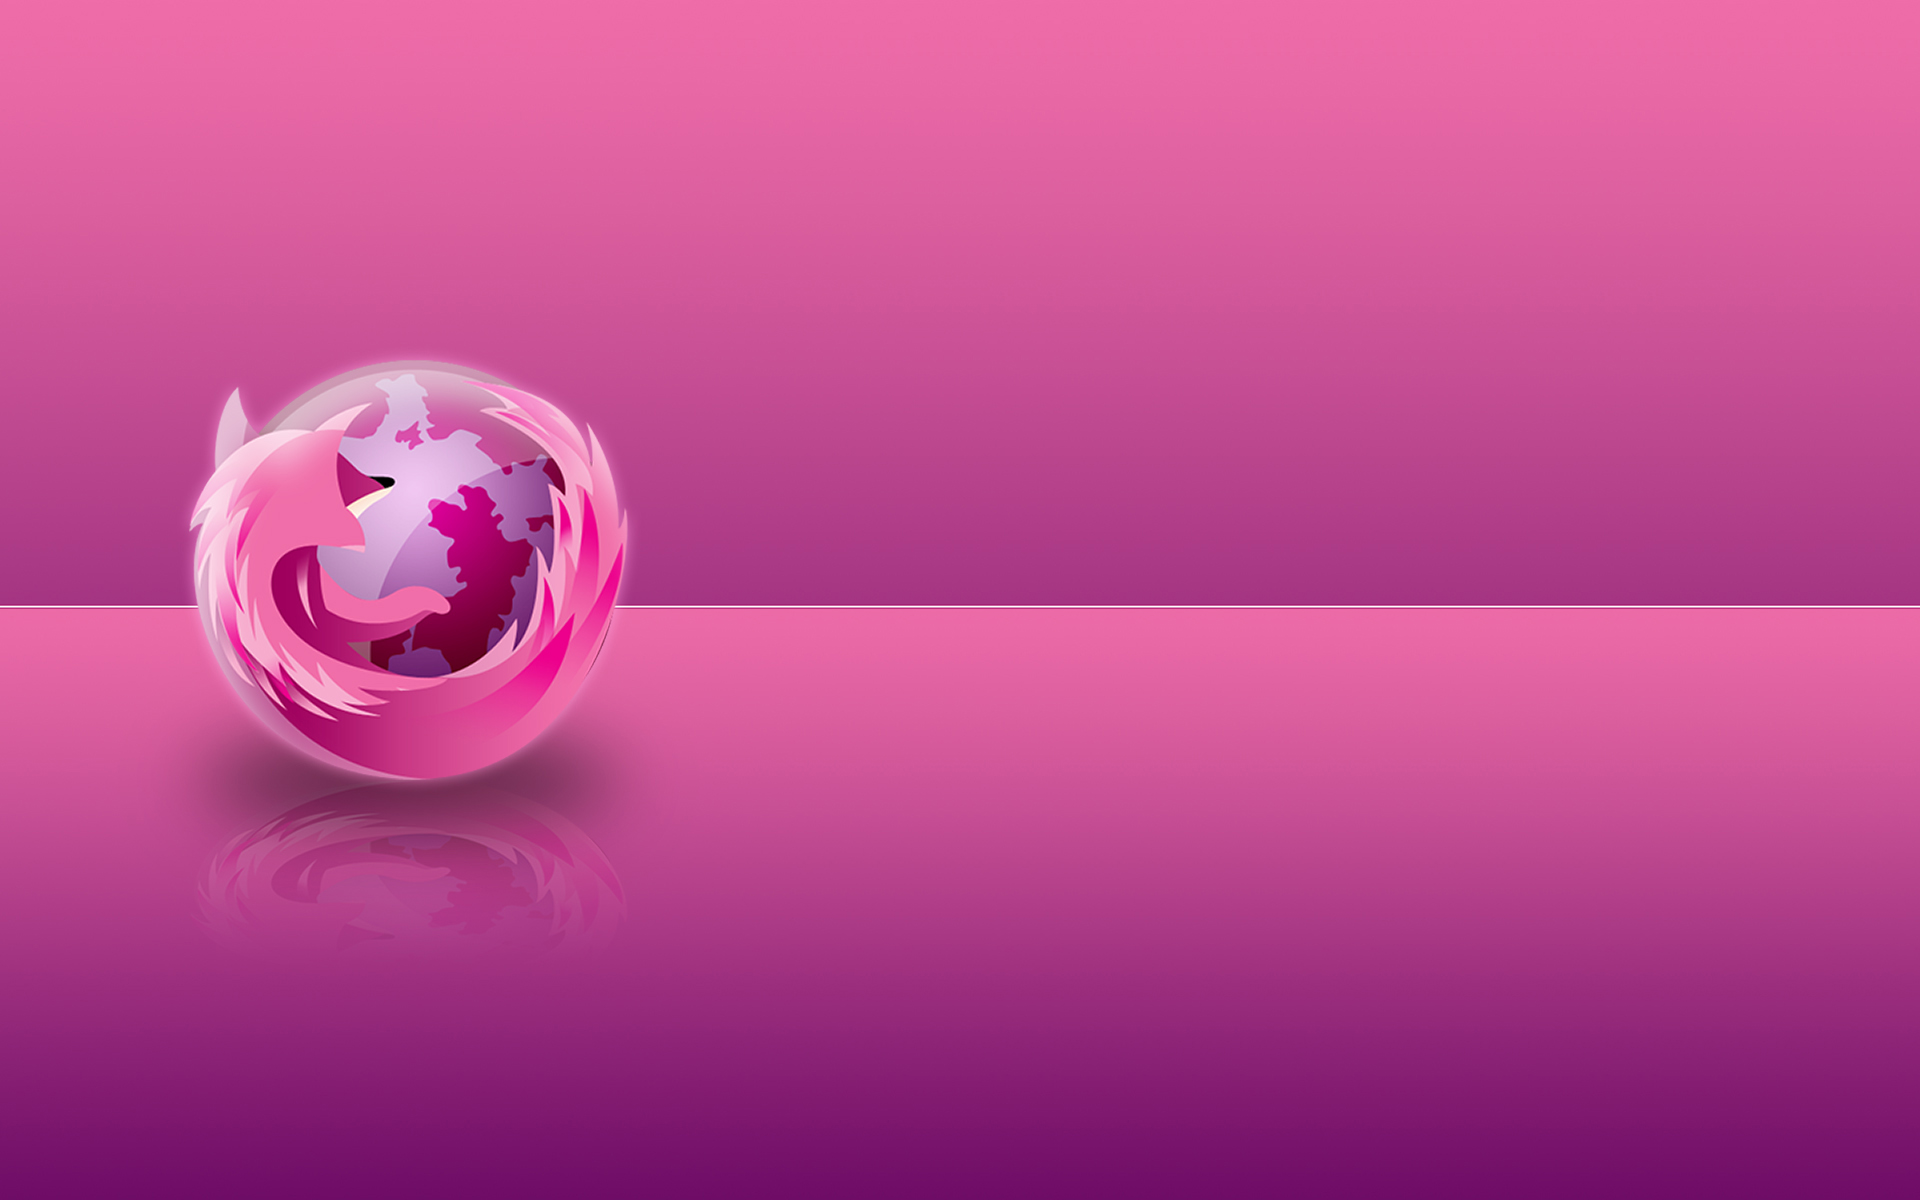 Firefox Wallpapers Pink Firefox Myspace Backgrounds Pink Firefox 1920x1200